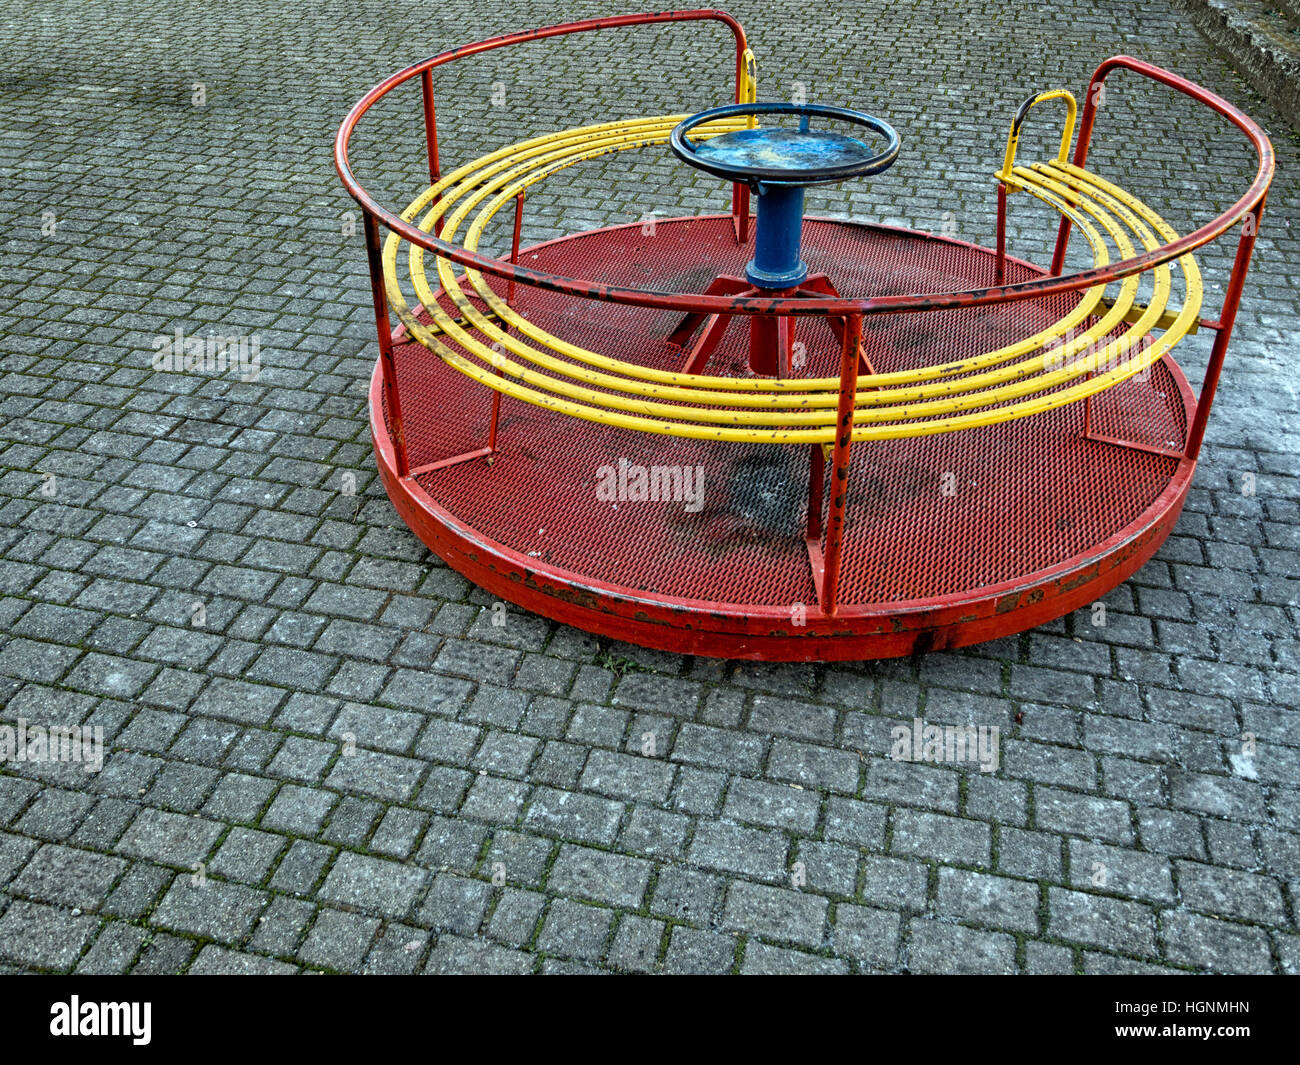 Empty playground, old roundabout. Urban environment, no children. - Stock Image